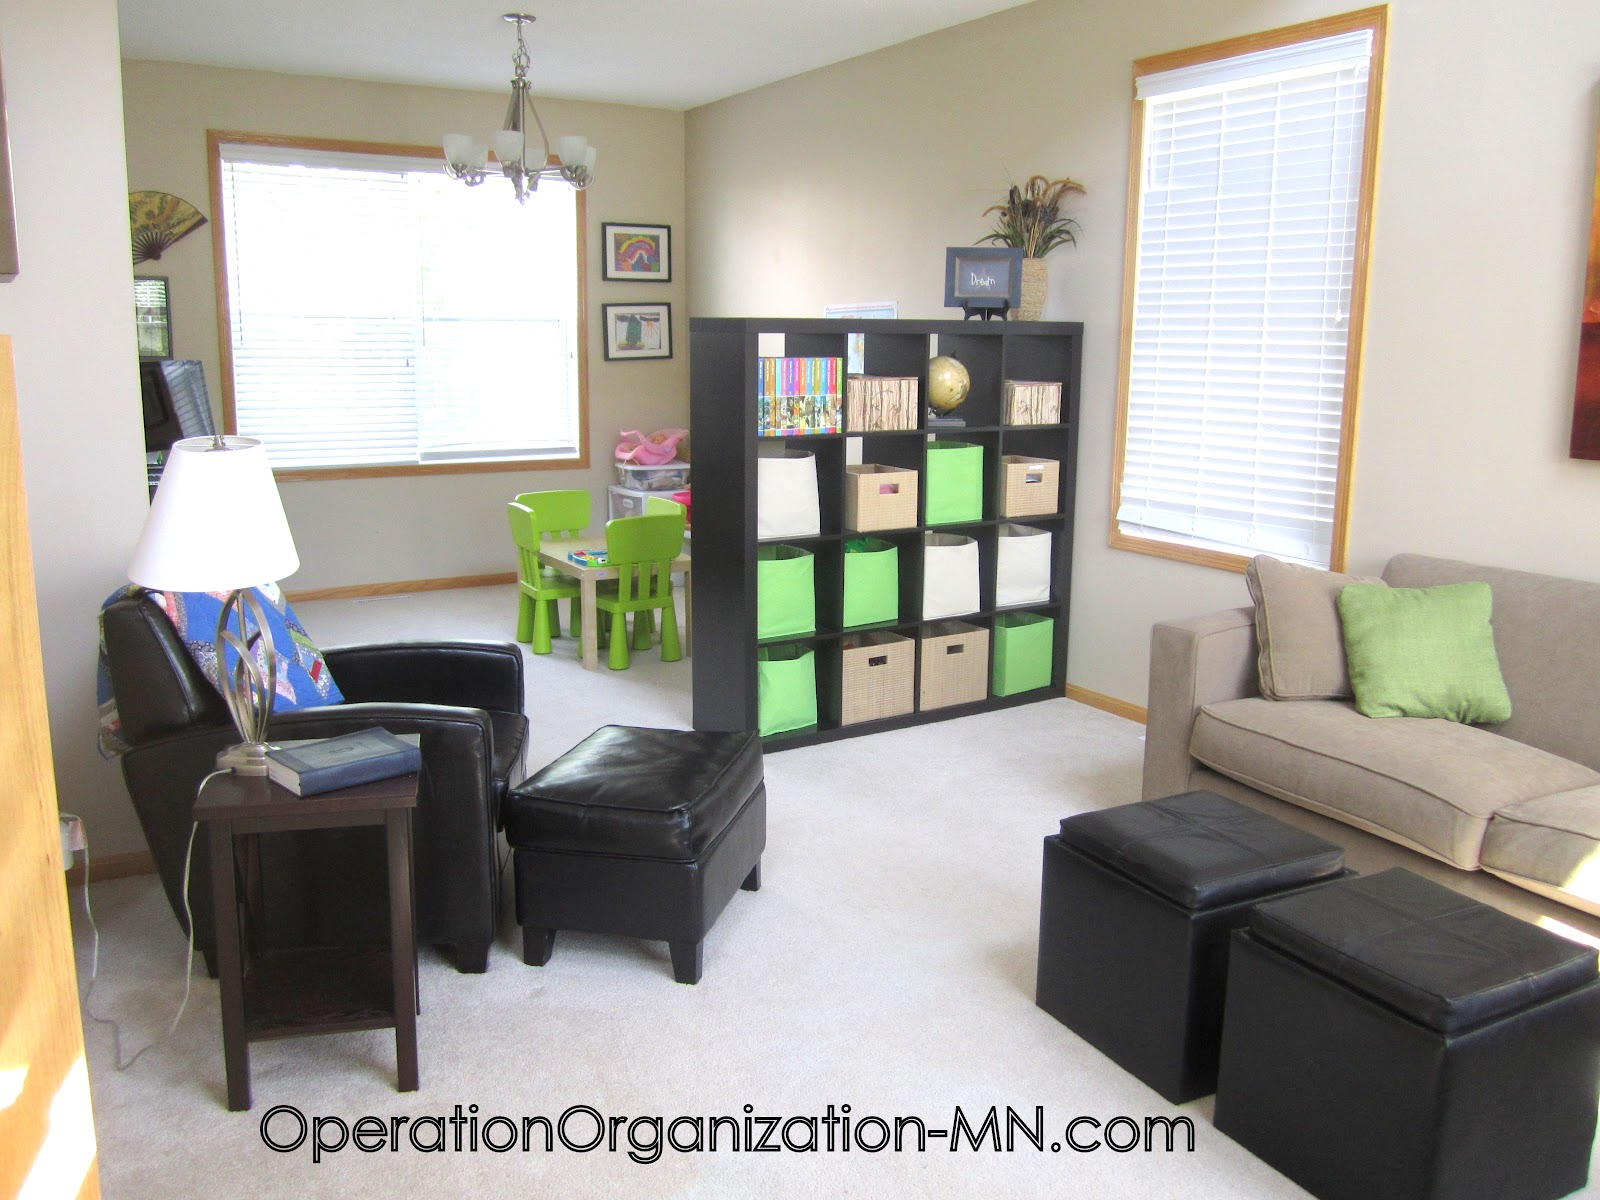 Operation organization professional organizer peachtree for Living room organization furniture